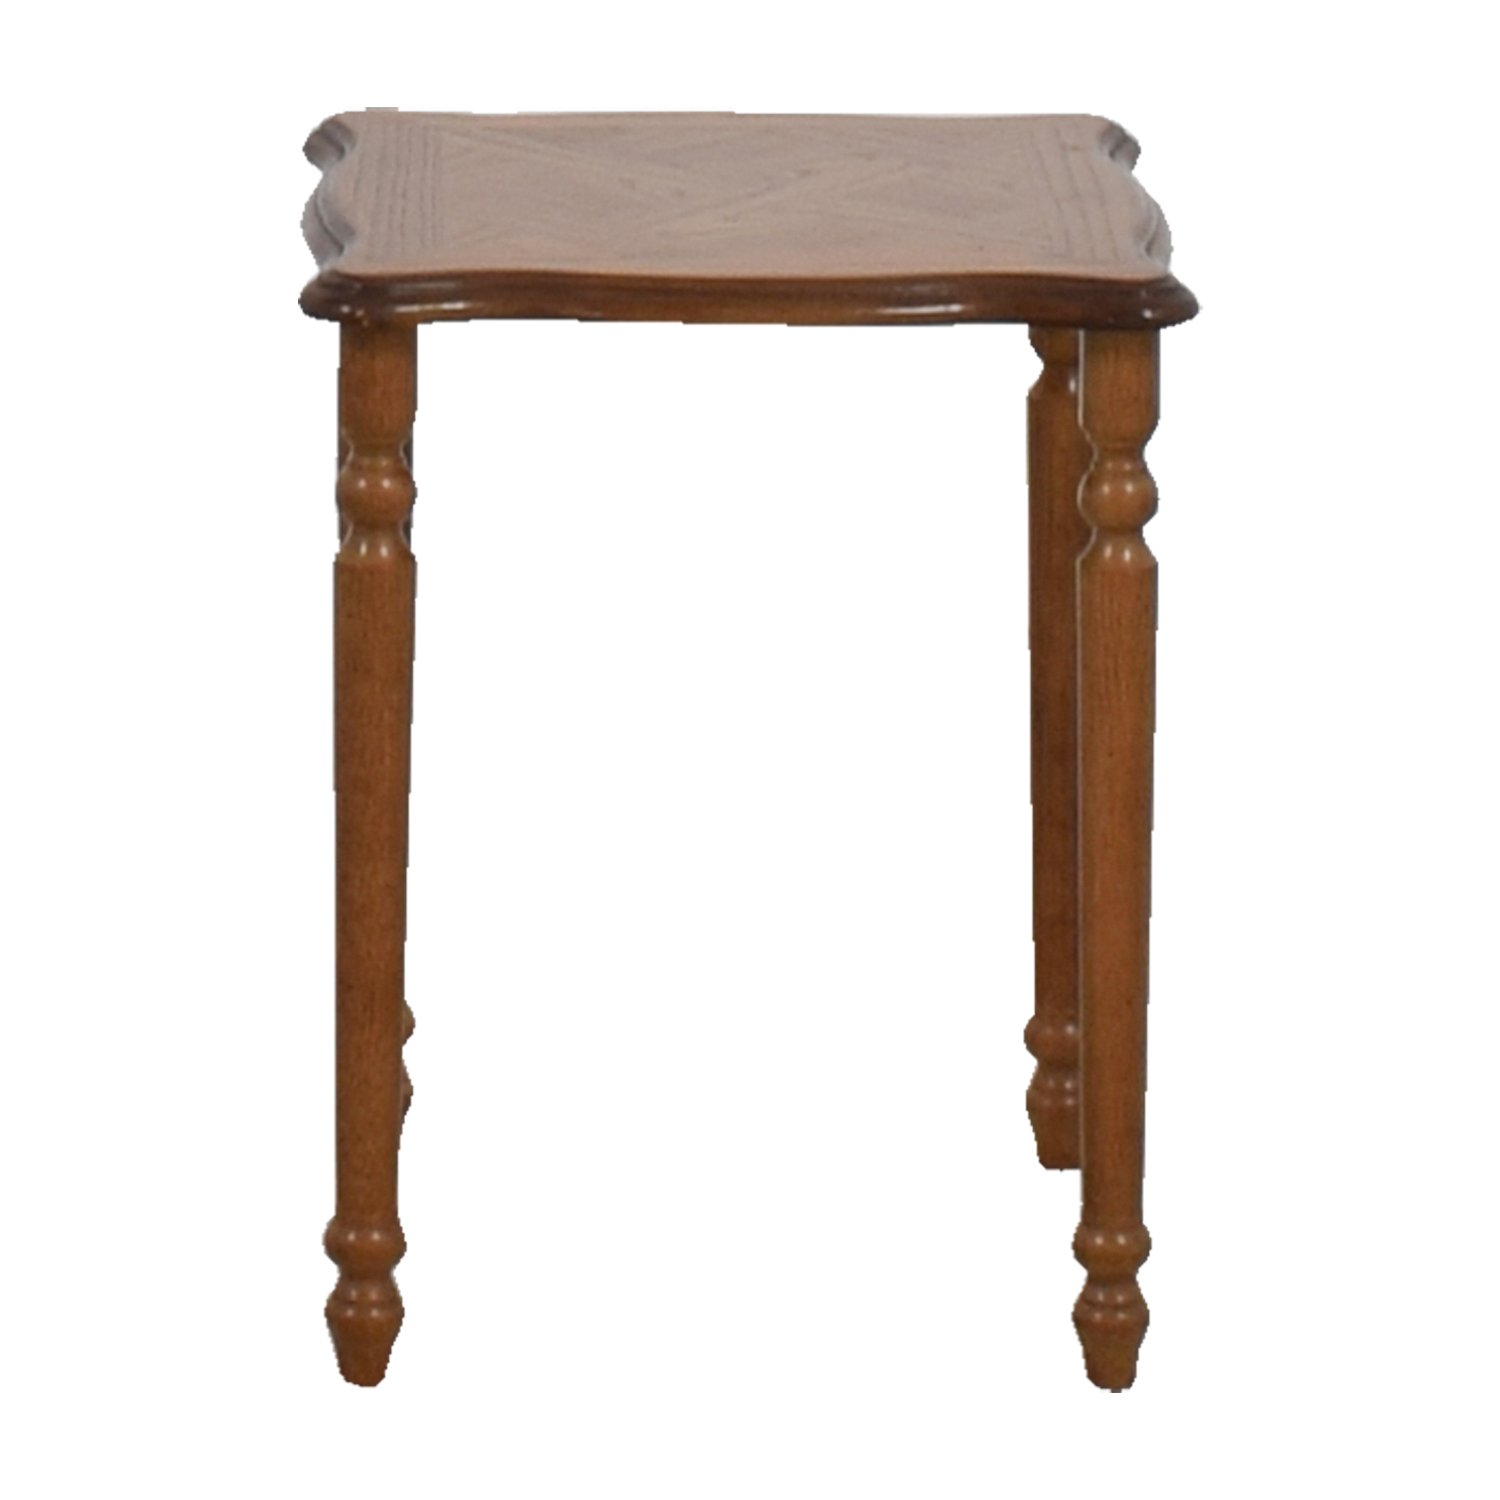 Classic Small Wooden End Table used